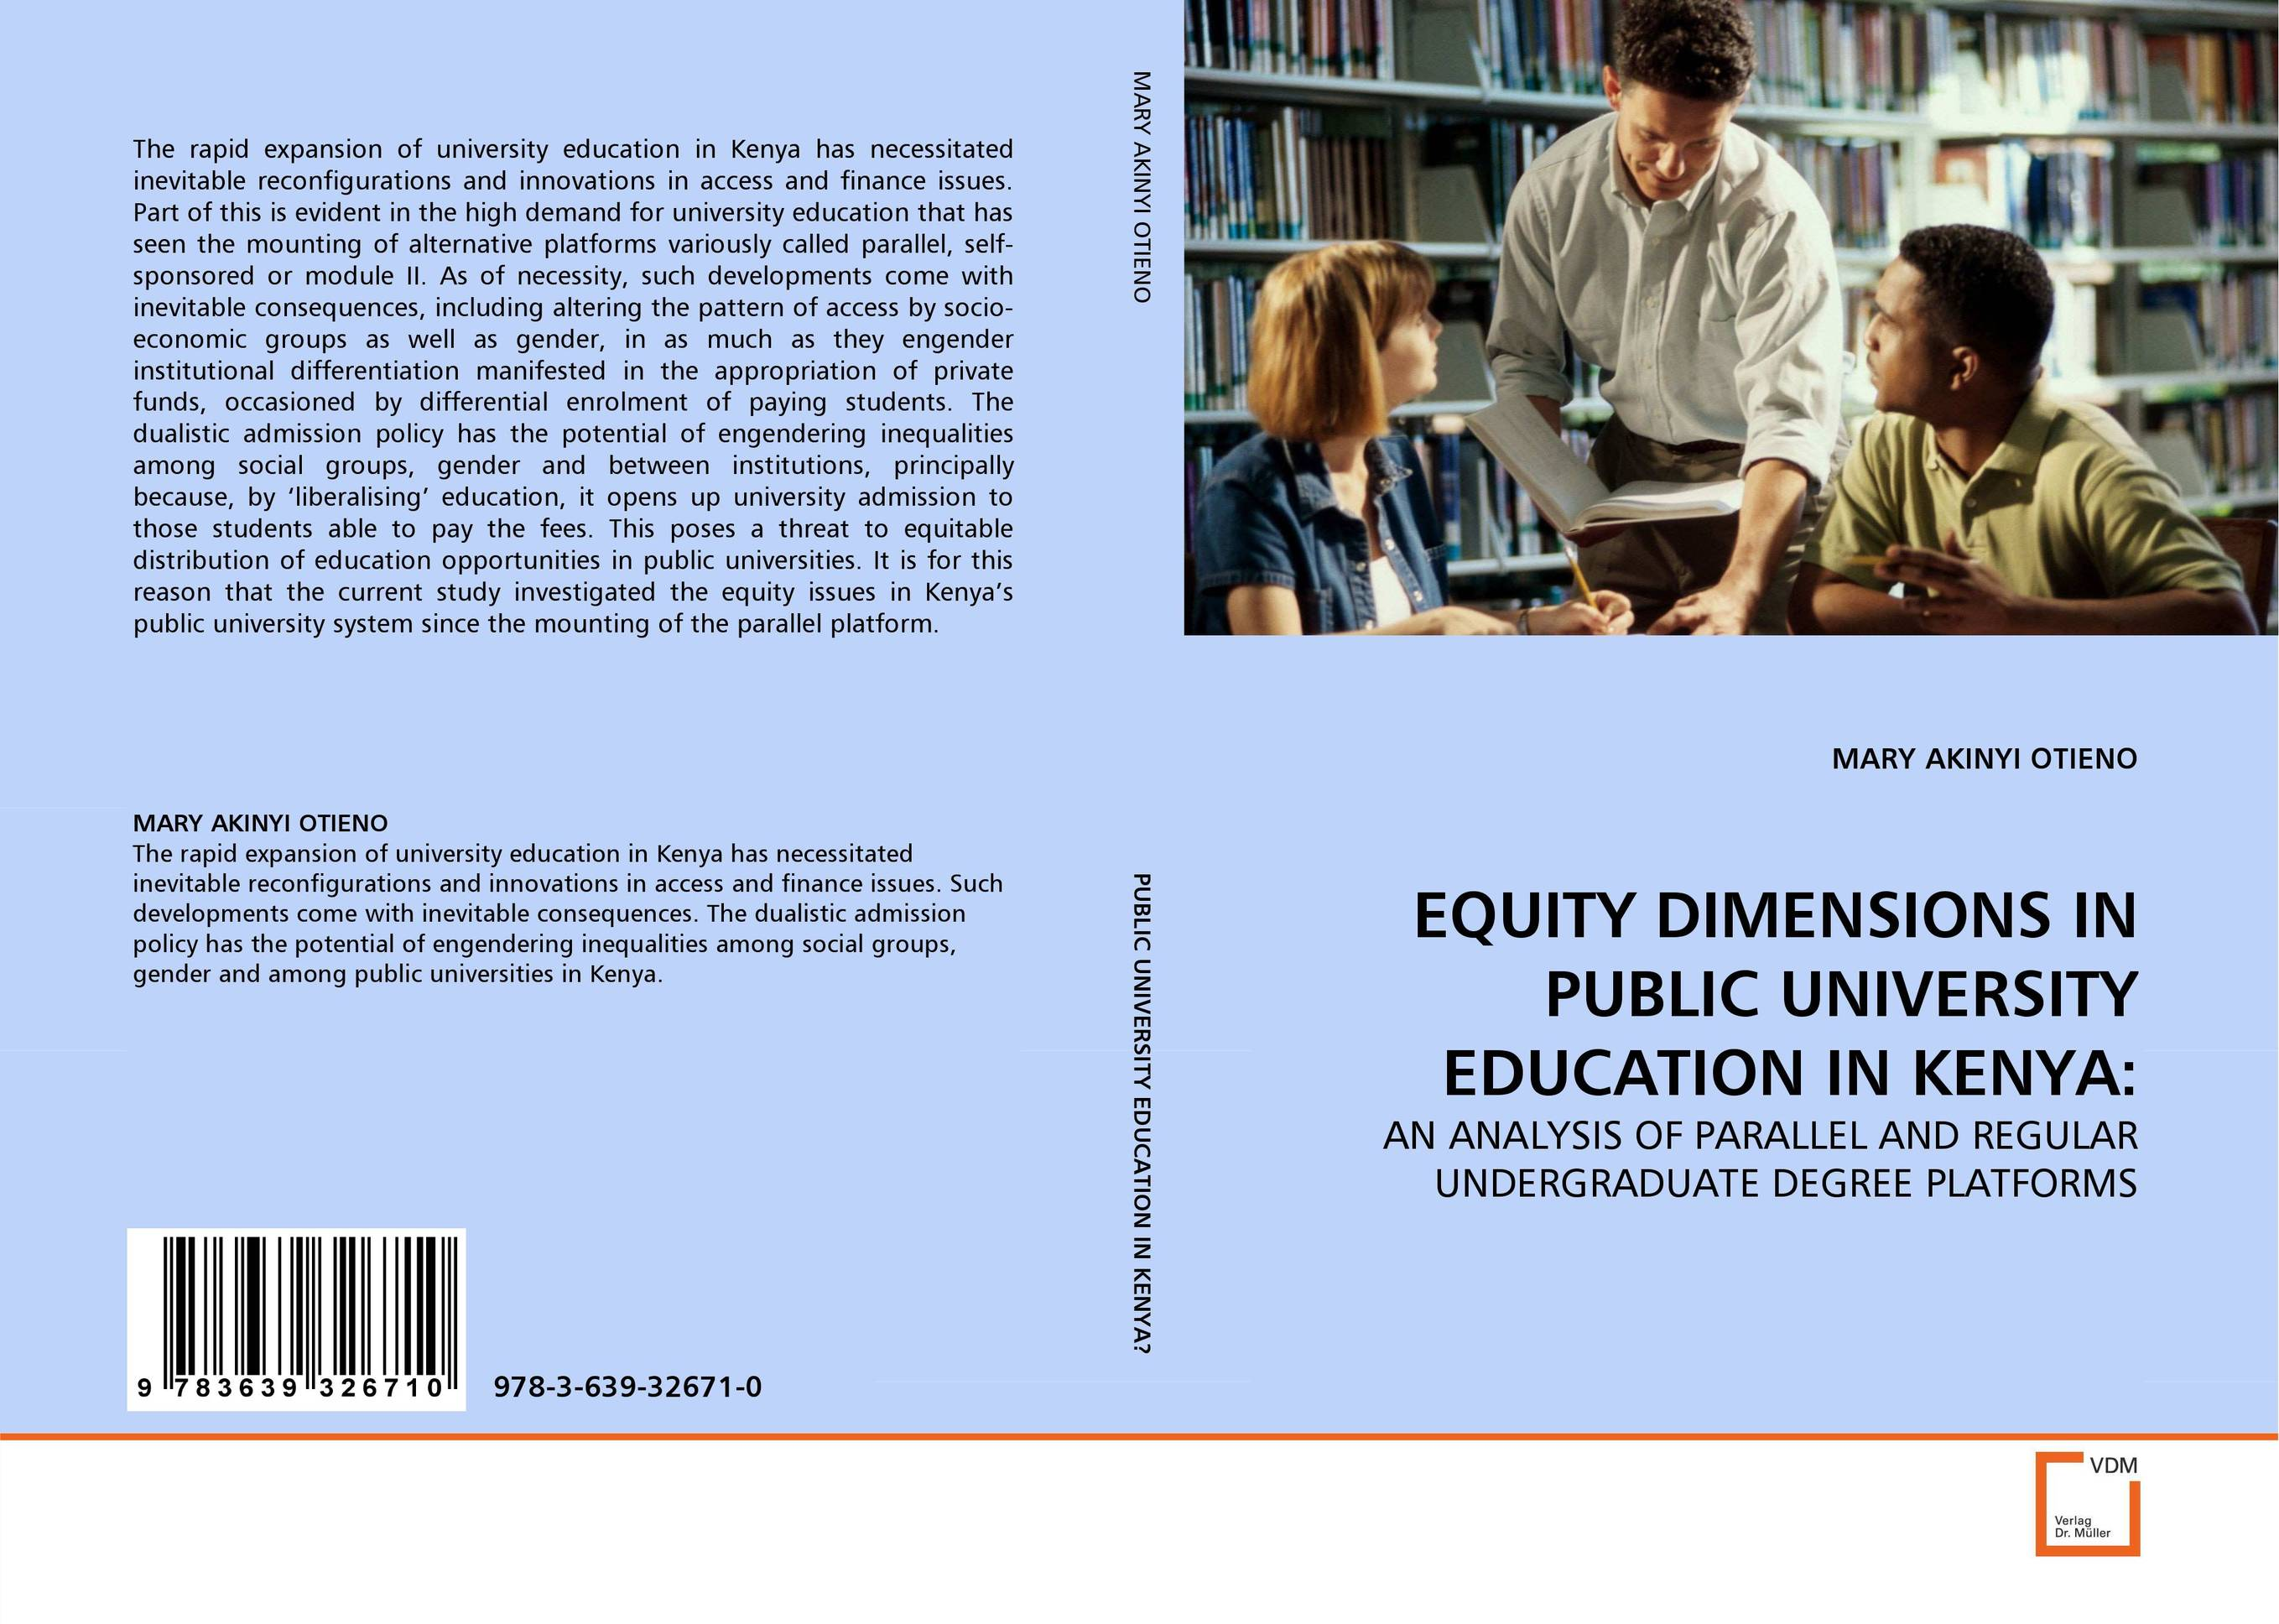 EQUITY DIMENSIONS IN PUBLIC UNIVERSITY EDUCATION IN KENYA: peace education at the national university of rwanda